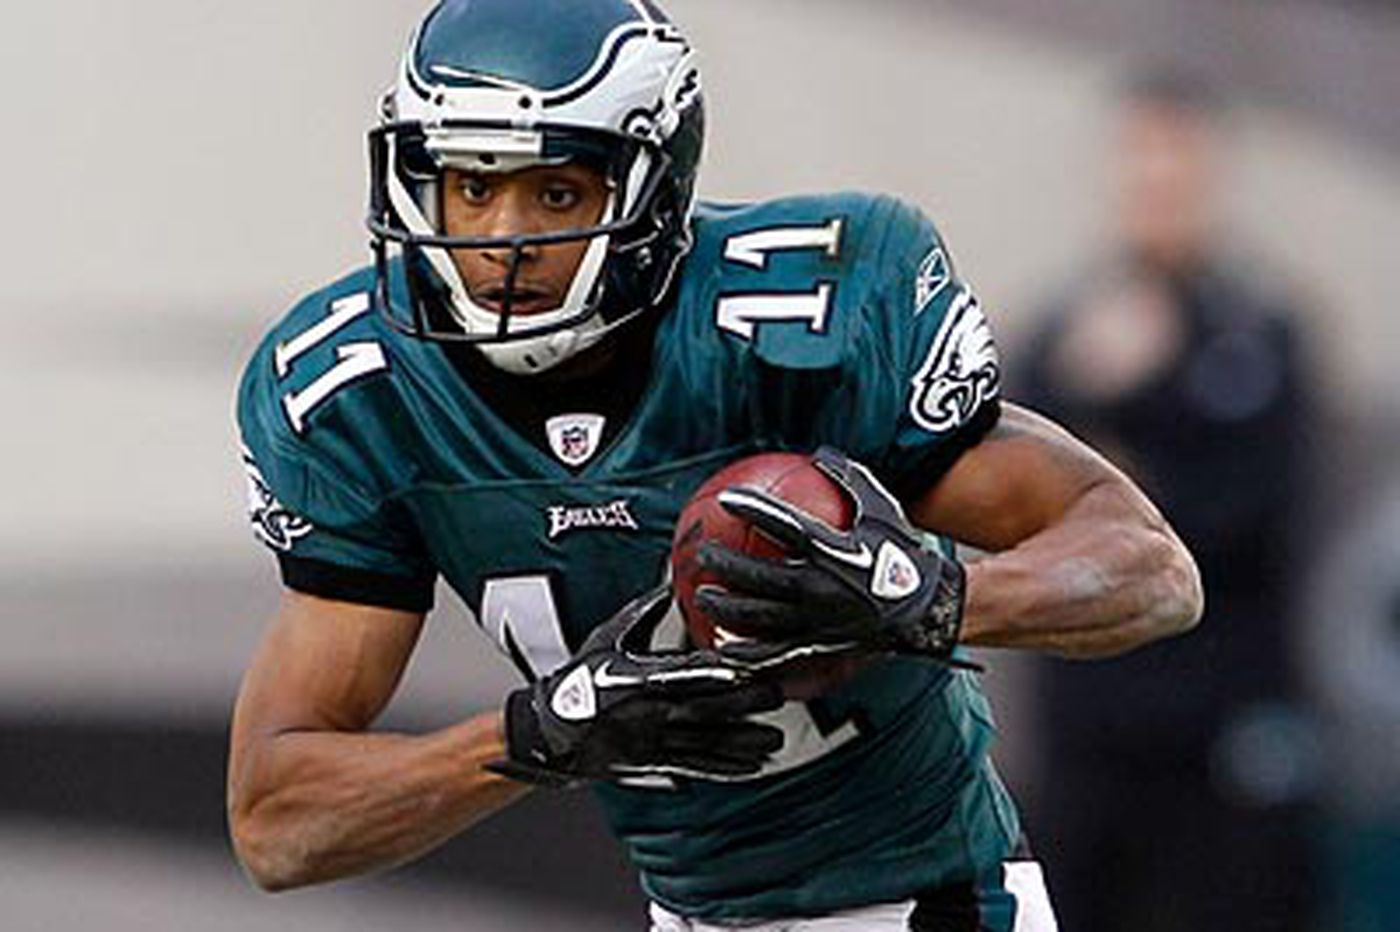 Eagles put wideout Smith on injured reserve